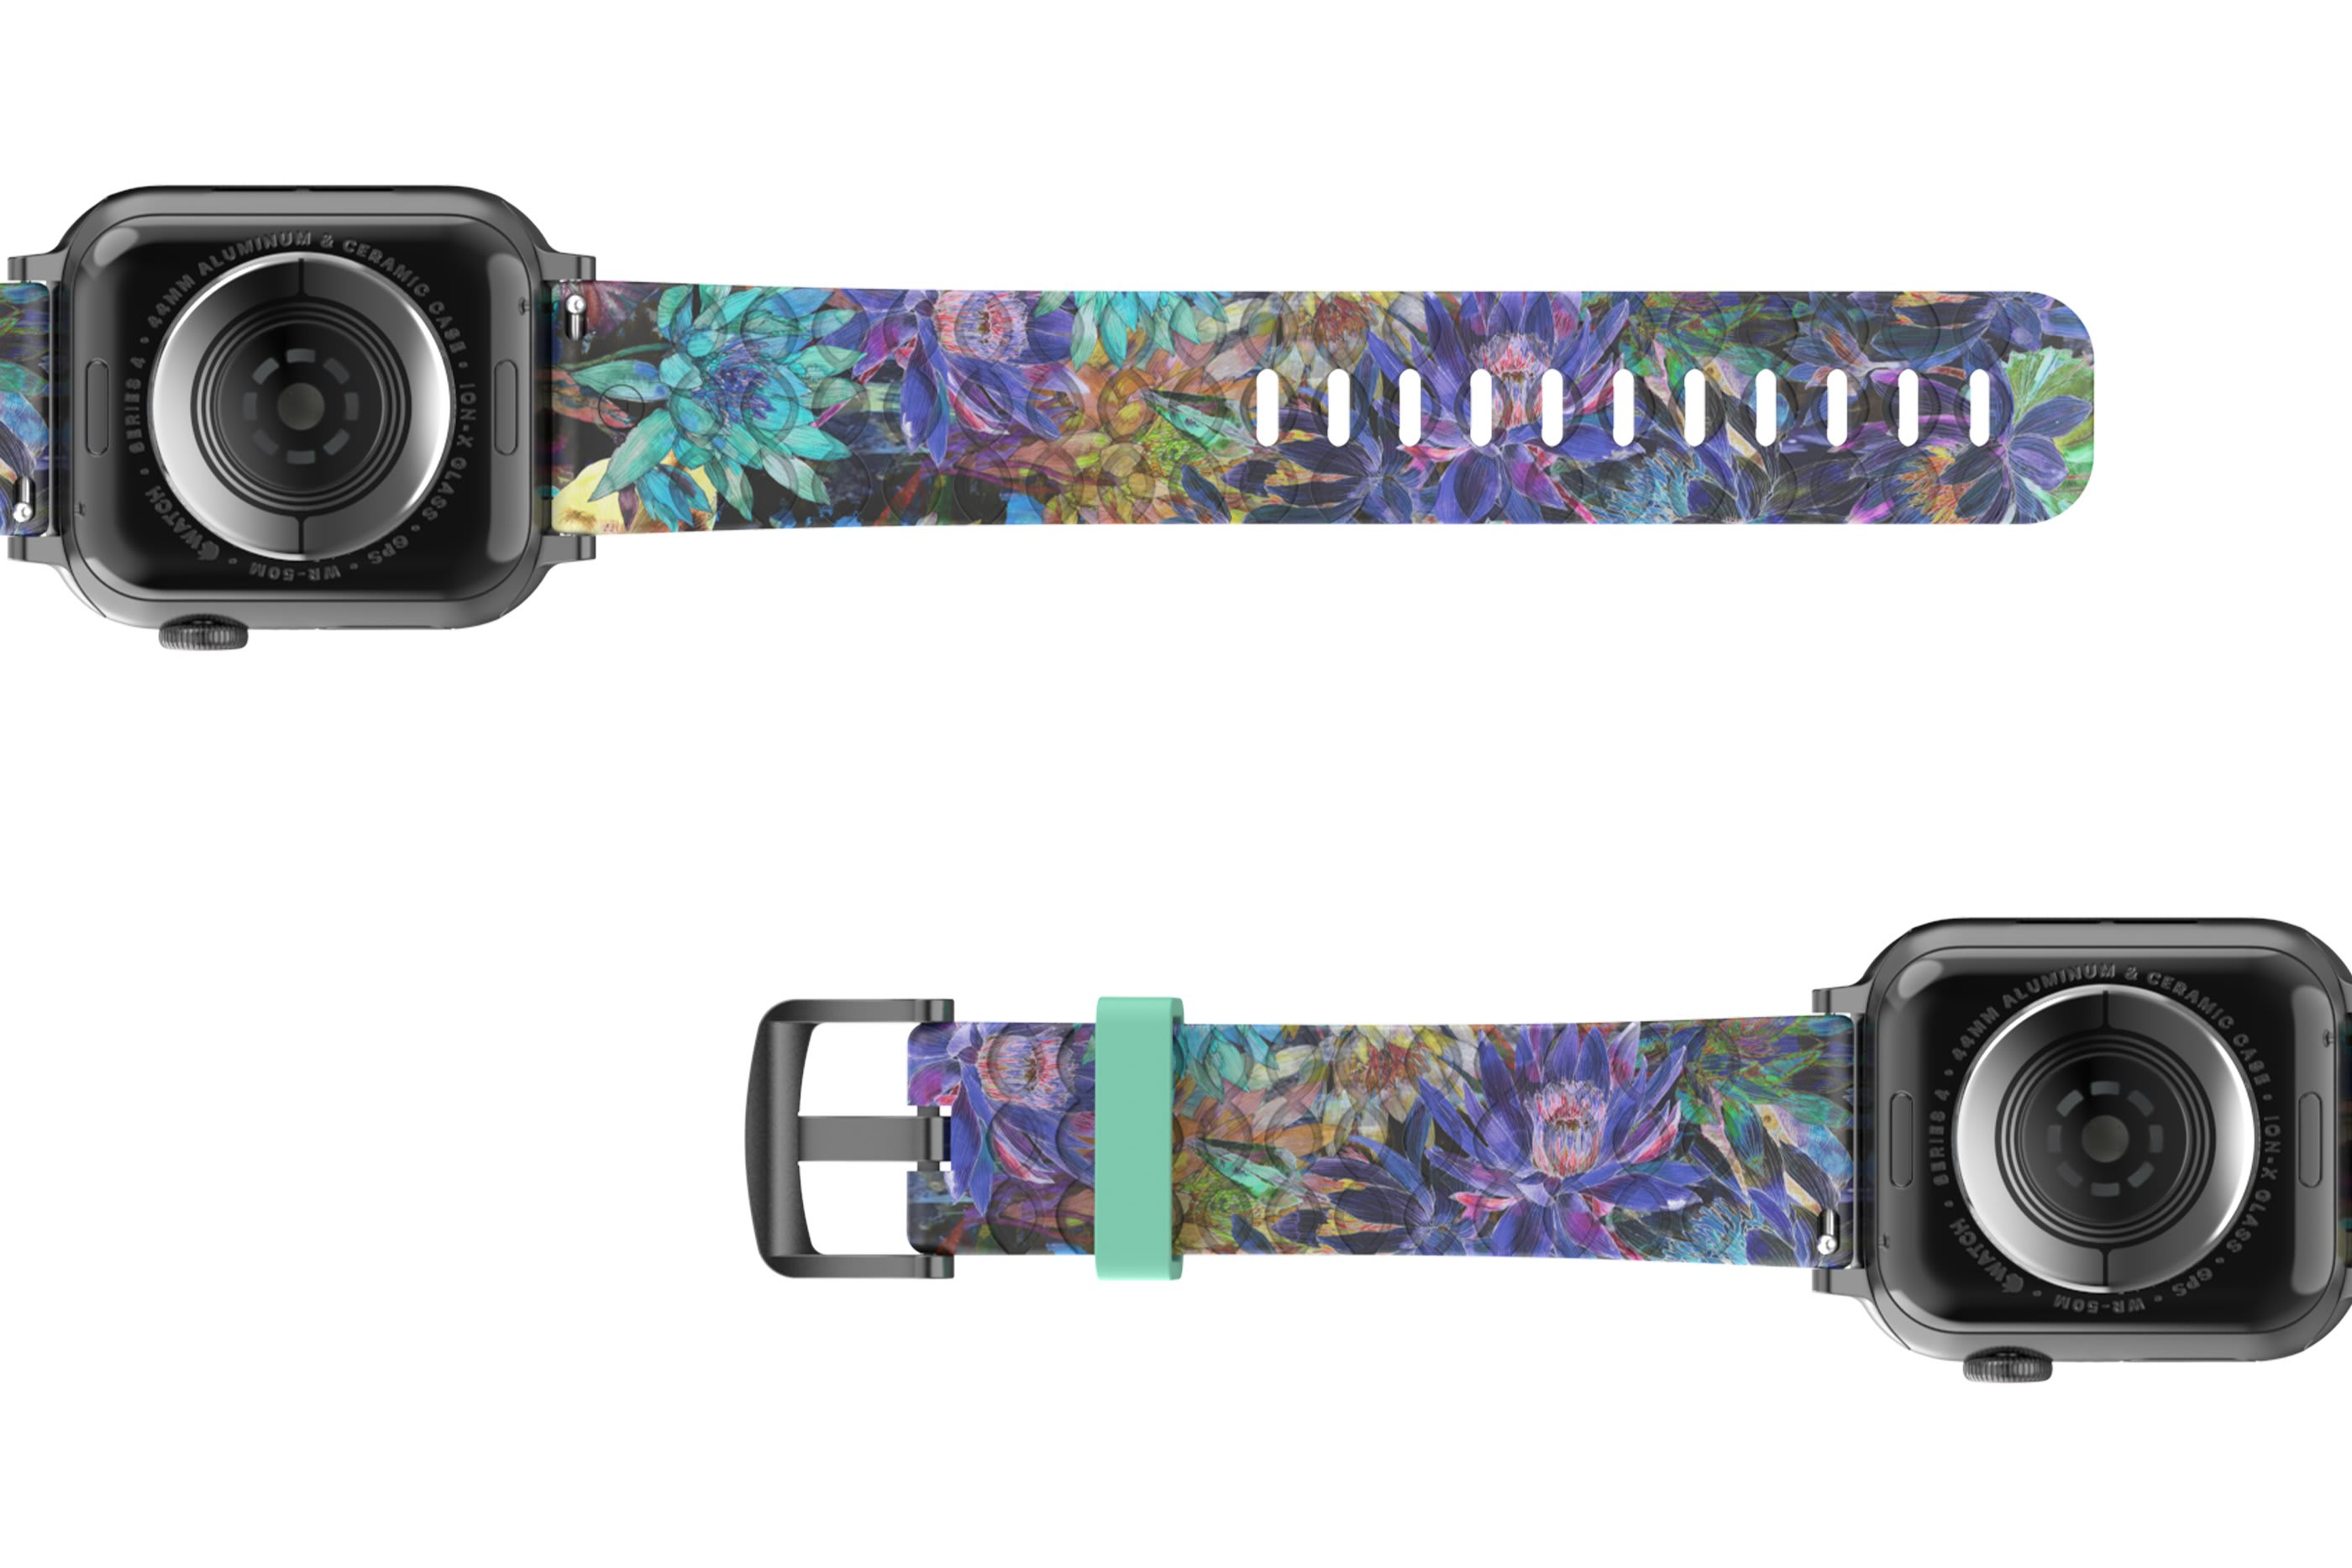 Twilight Blossom Apple Watch Band with gray hardware viewed bottom up